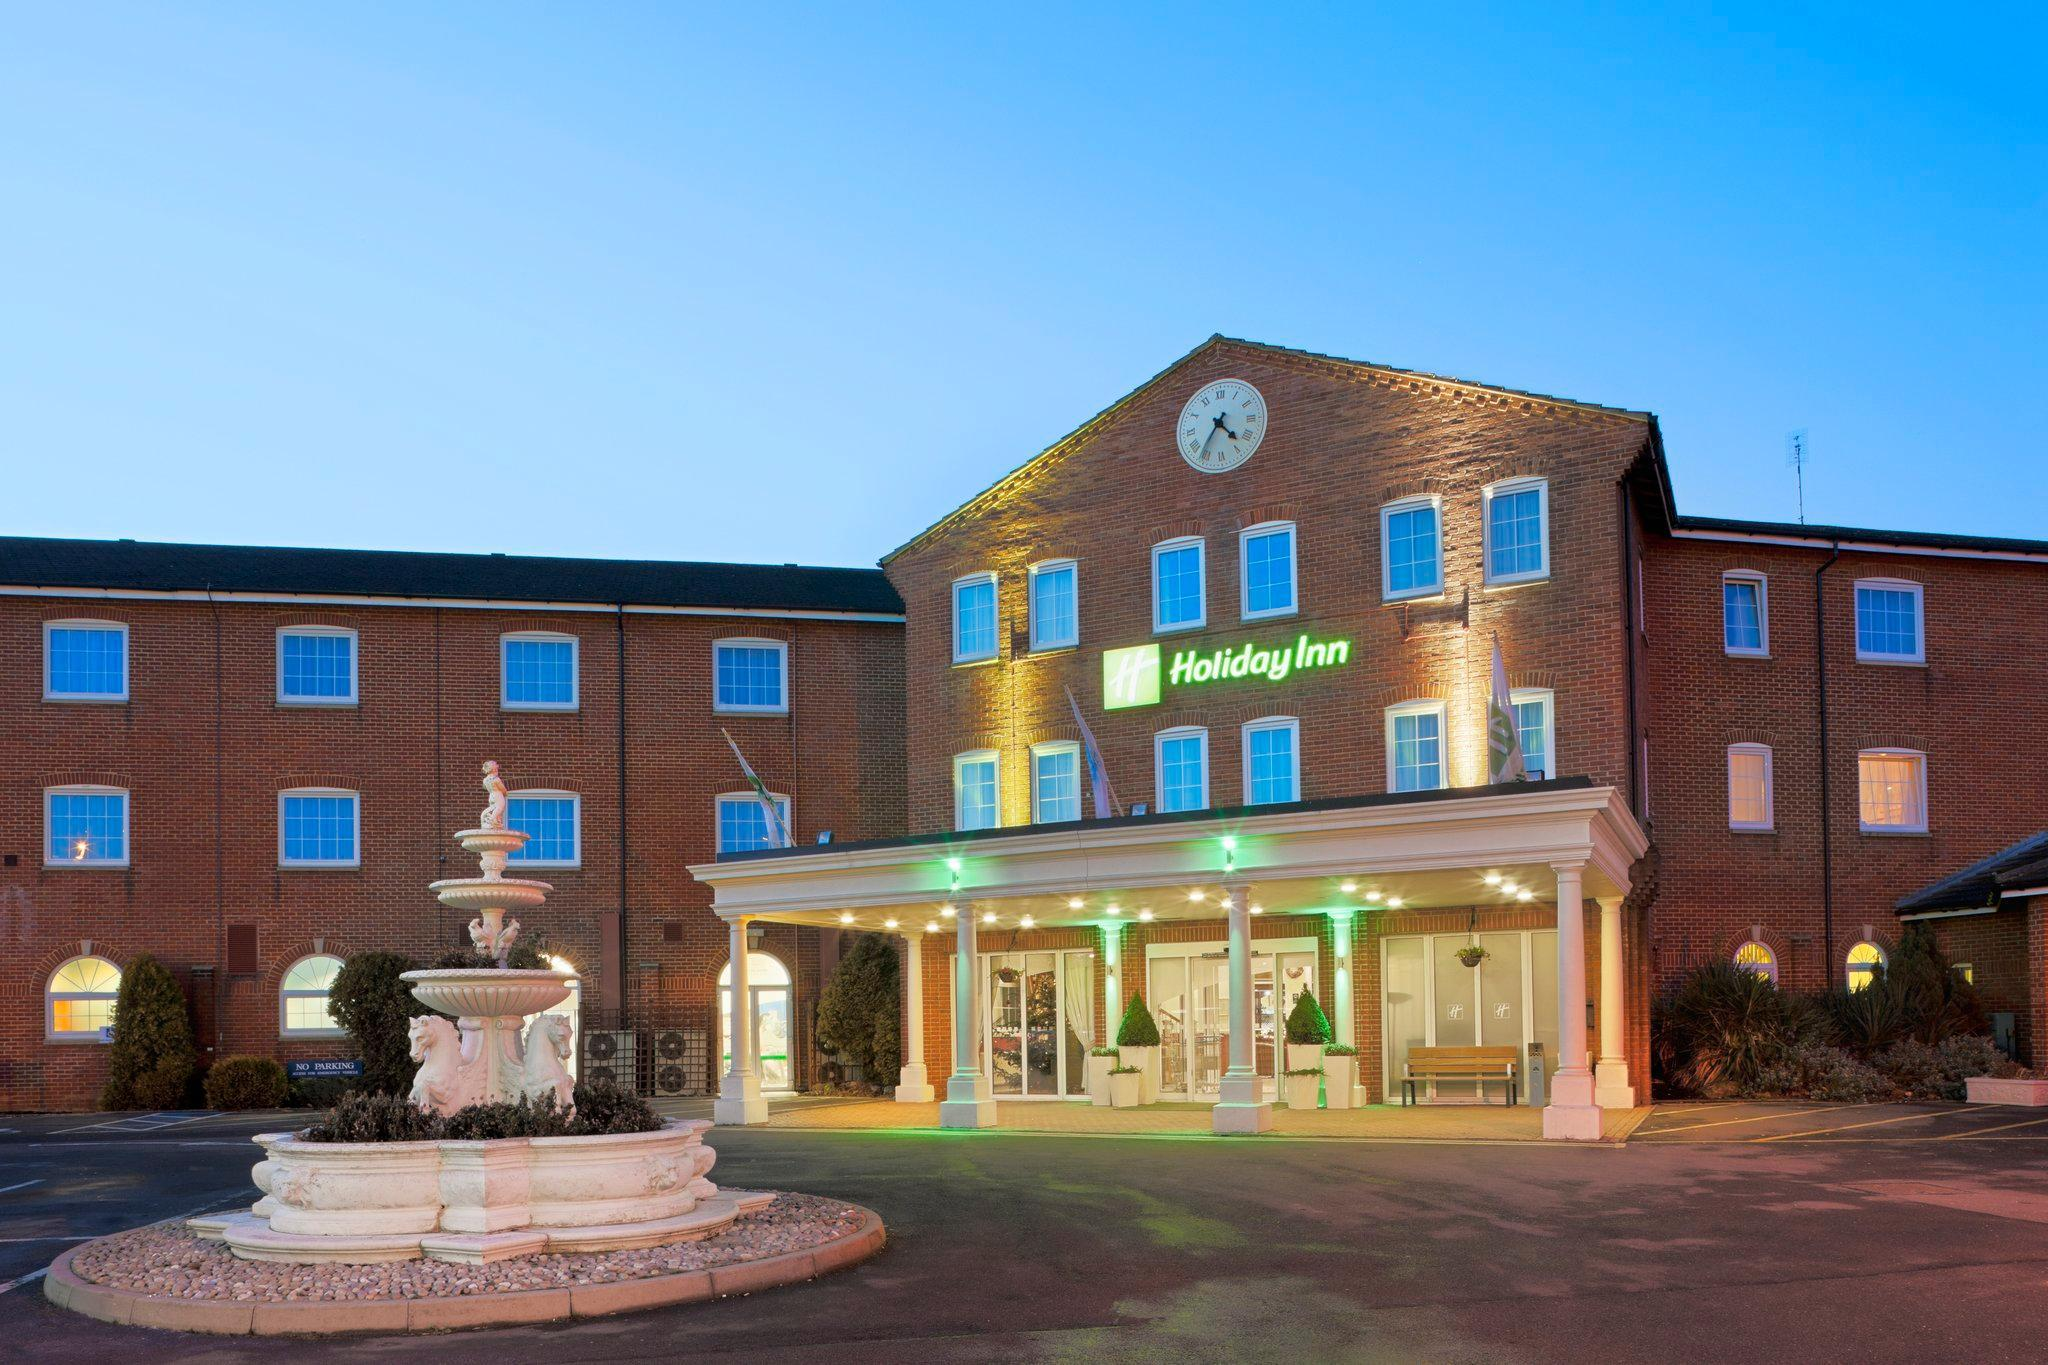 Holiday Inn Corby Kettering A43, Northamptonshire